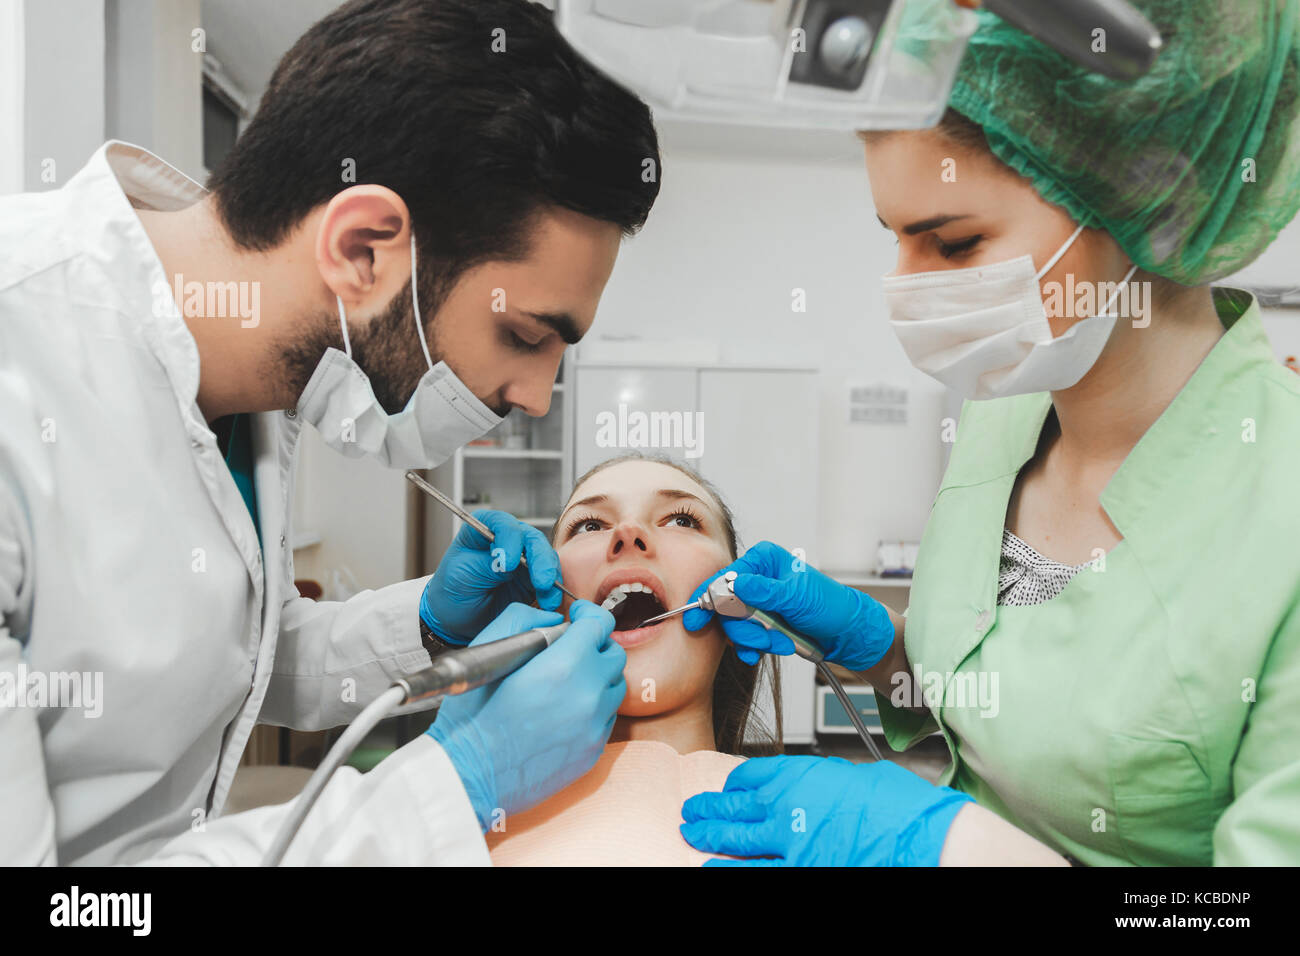 Young talented dentist and nurse at work - Stock Image